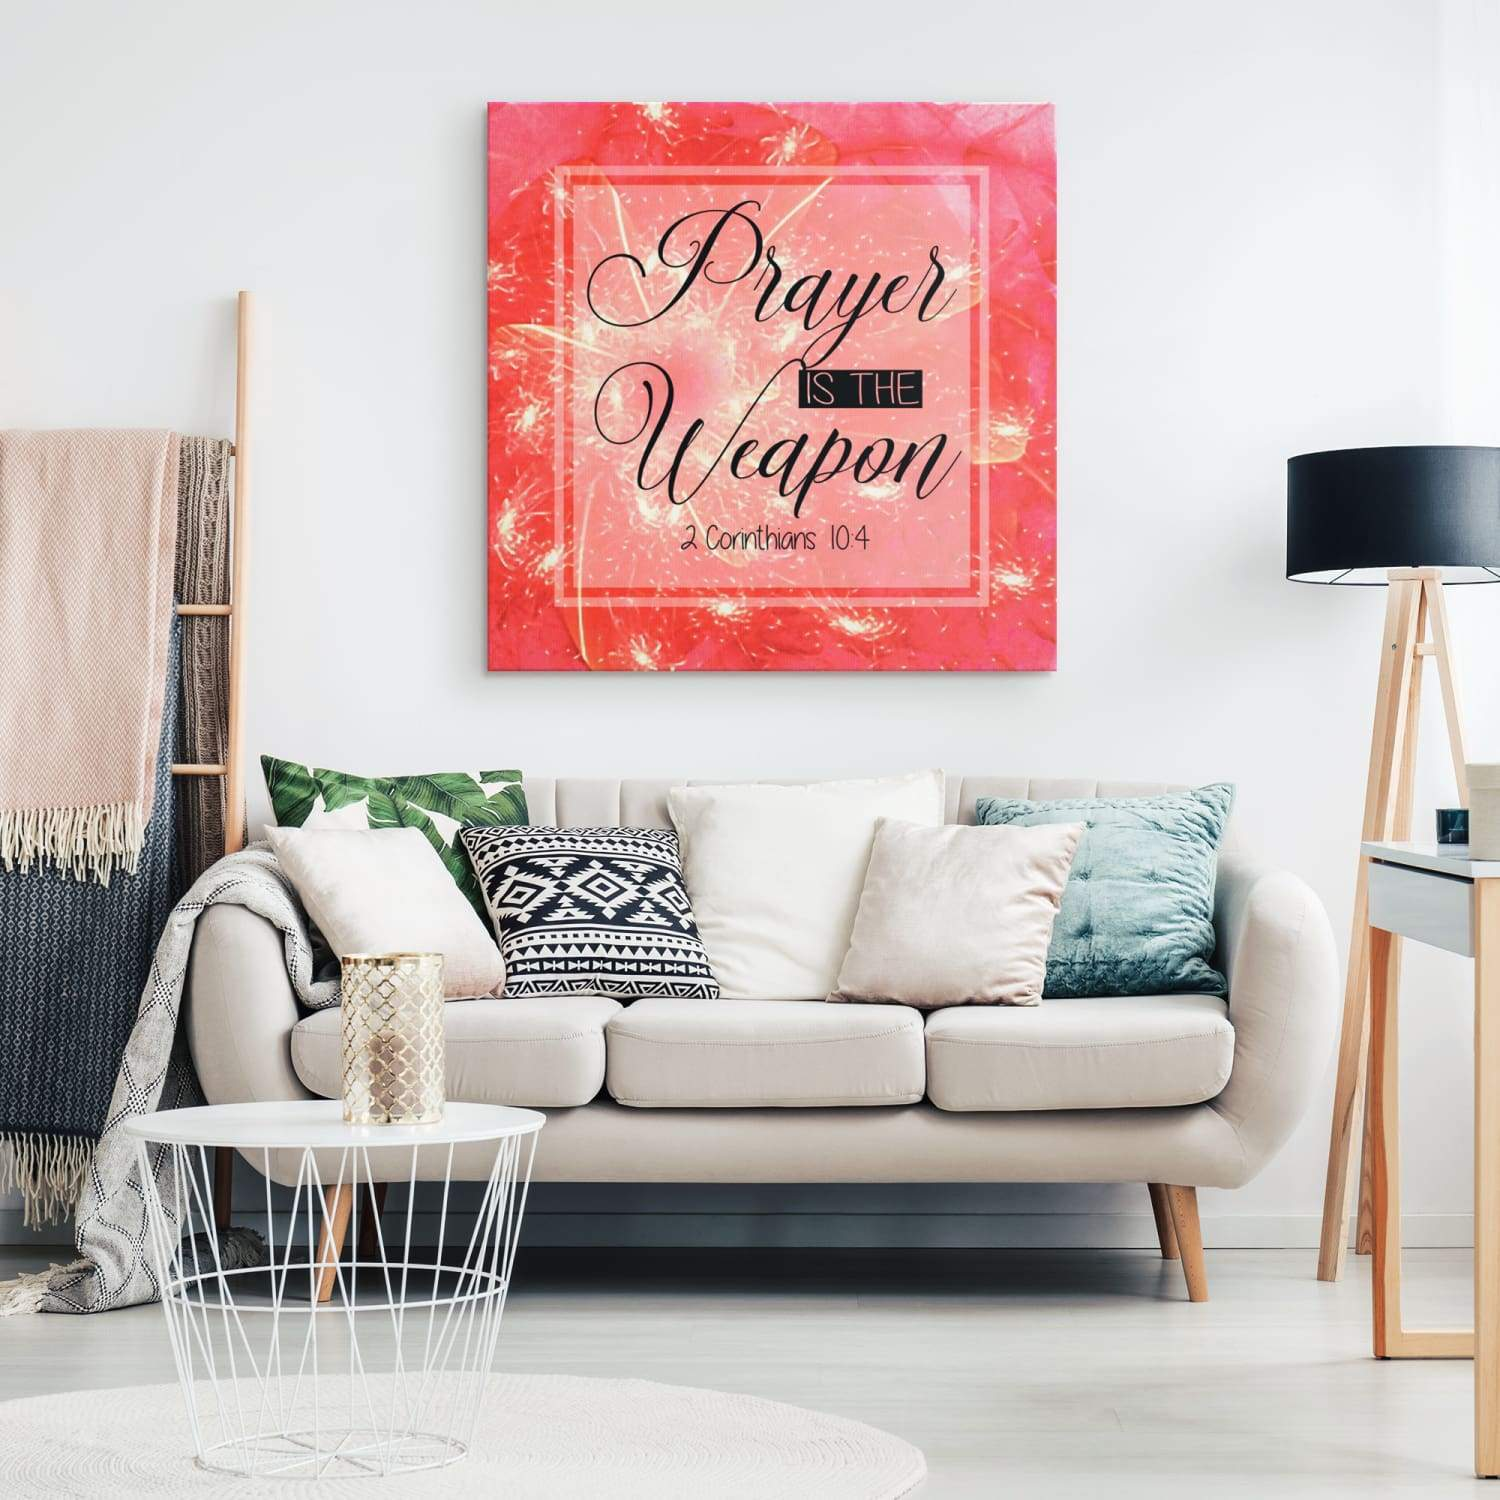 2 Corinthians 10:4 Prayer is the weapon canvas wall art - Square - GnWarriors Clothing